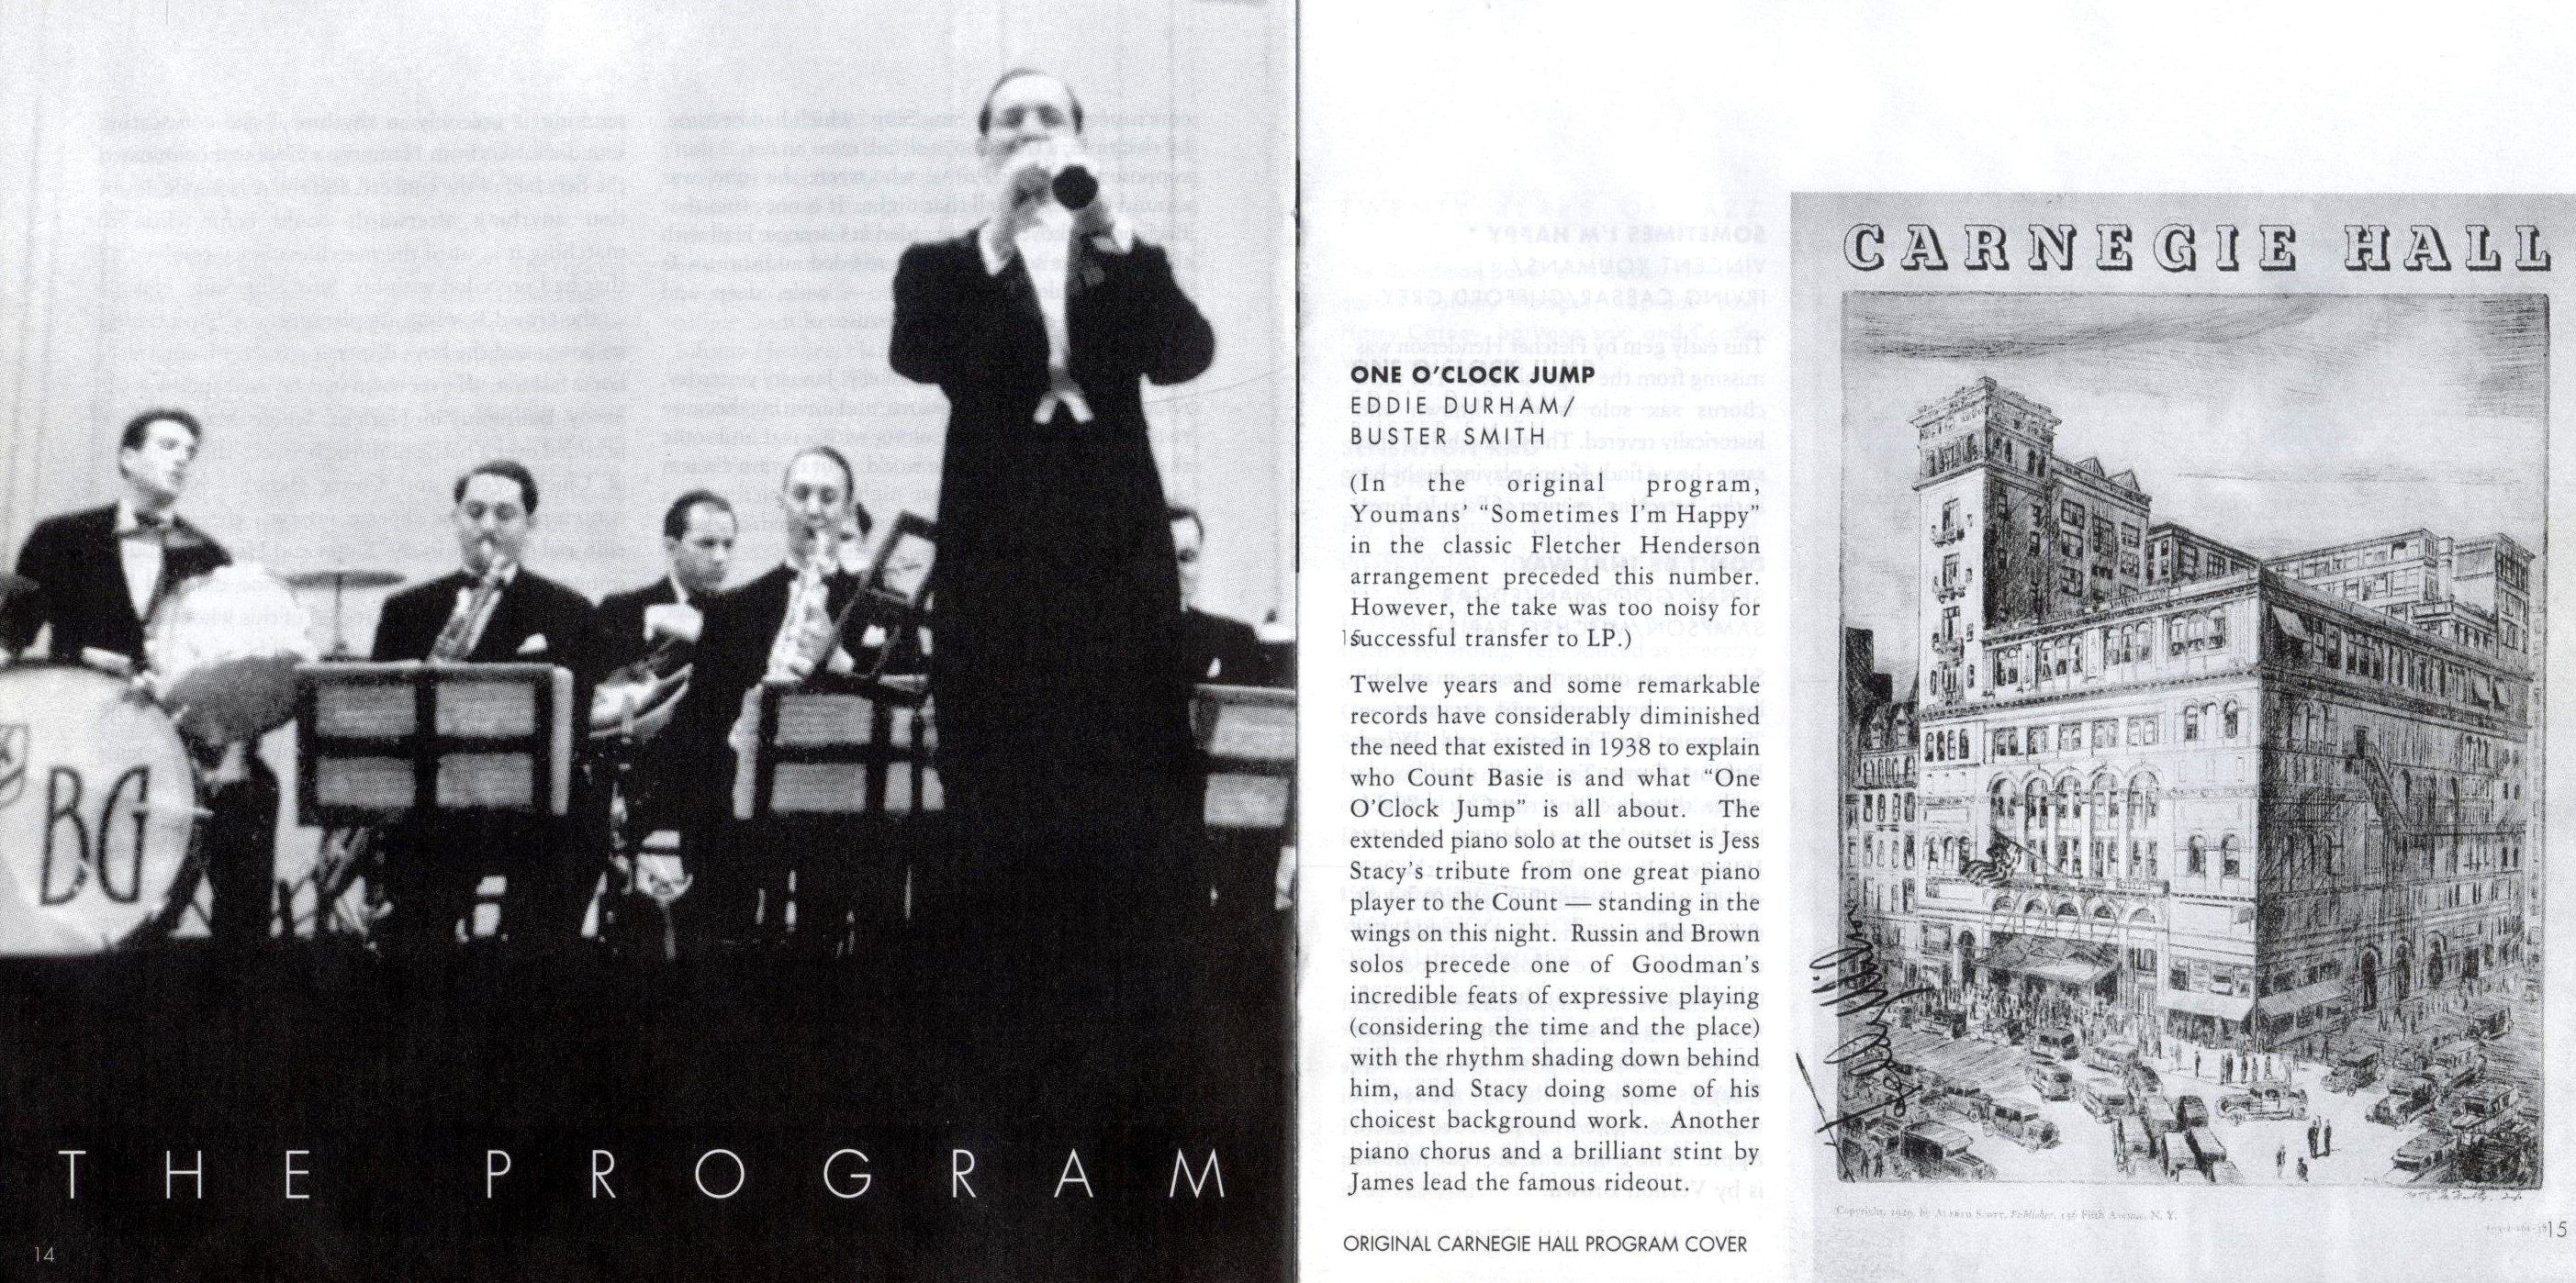 Benny Goodman - At Carnegie Hall 1938 Booklet 08 1950.jpg